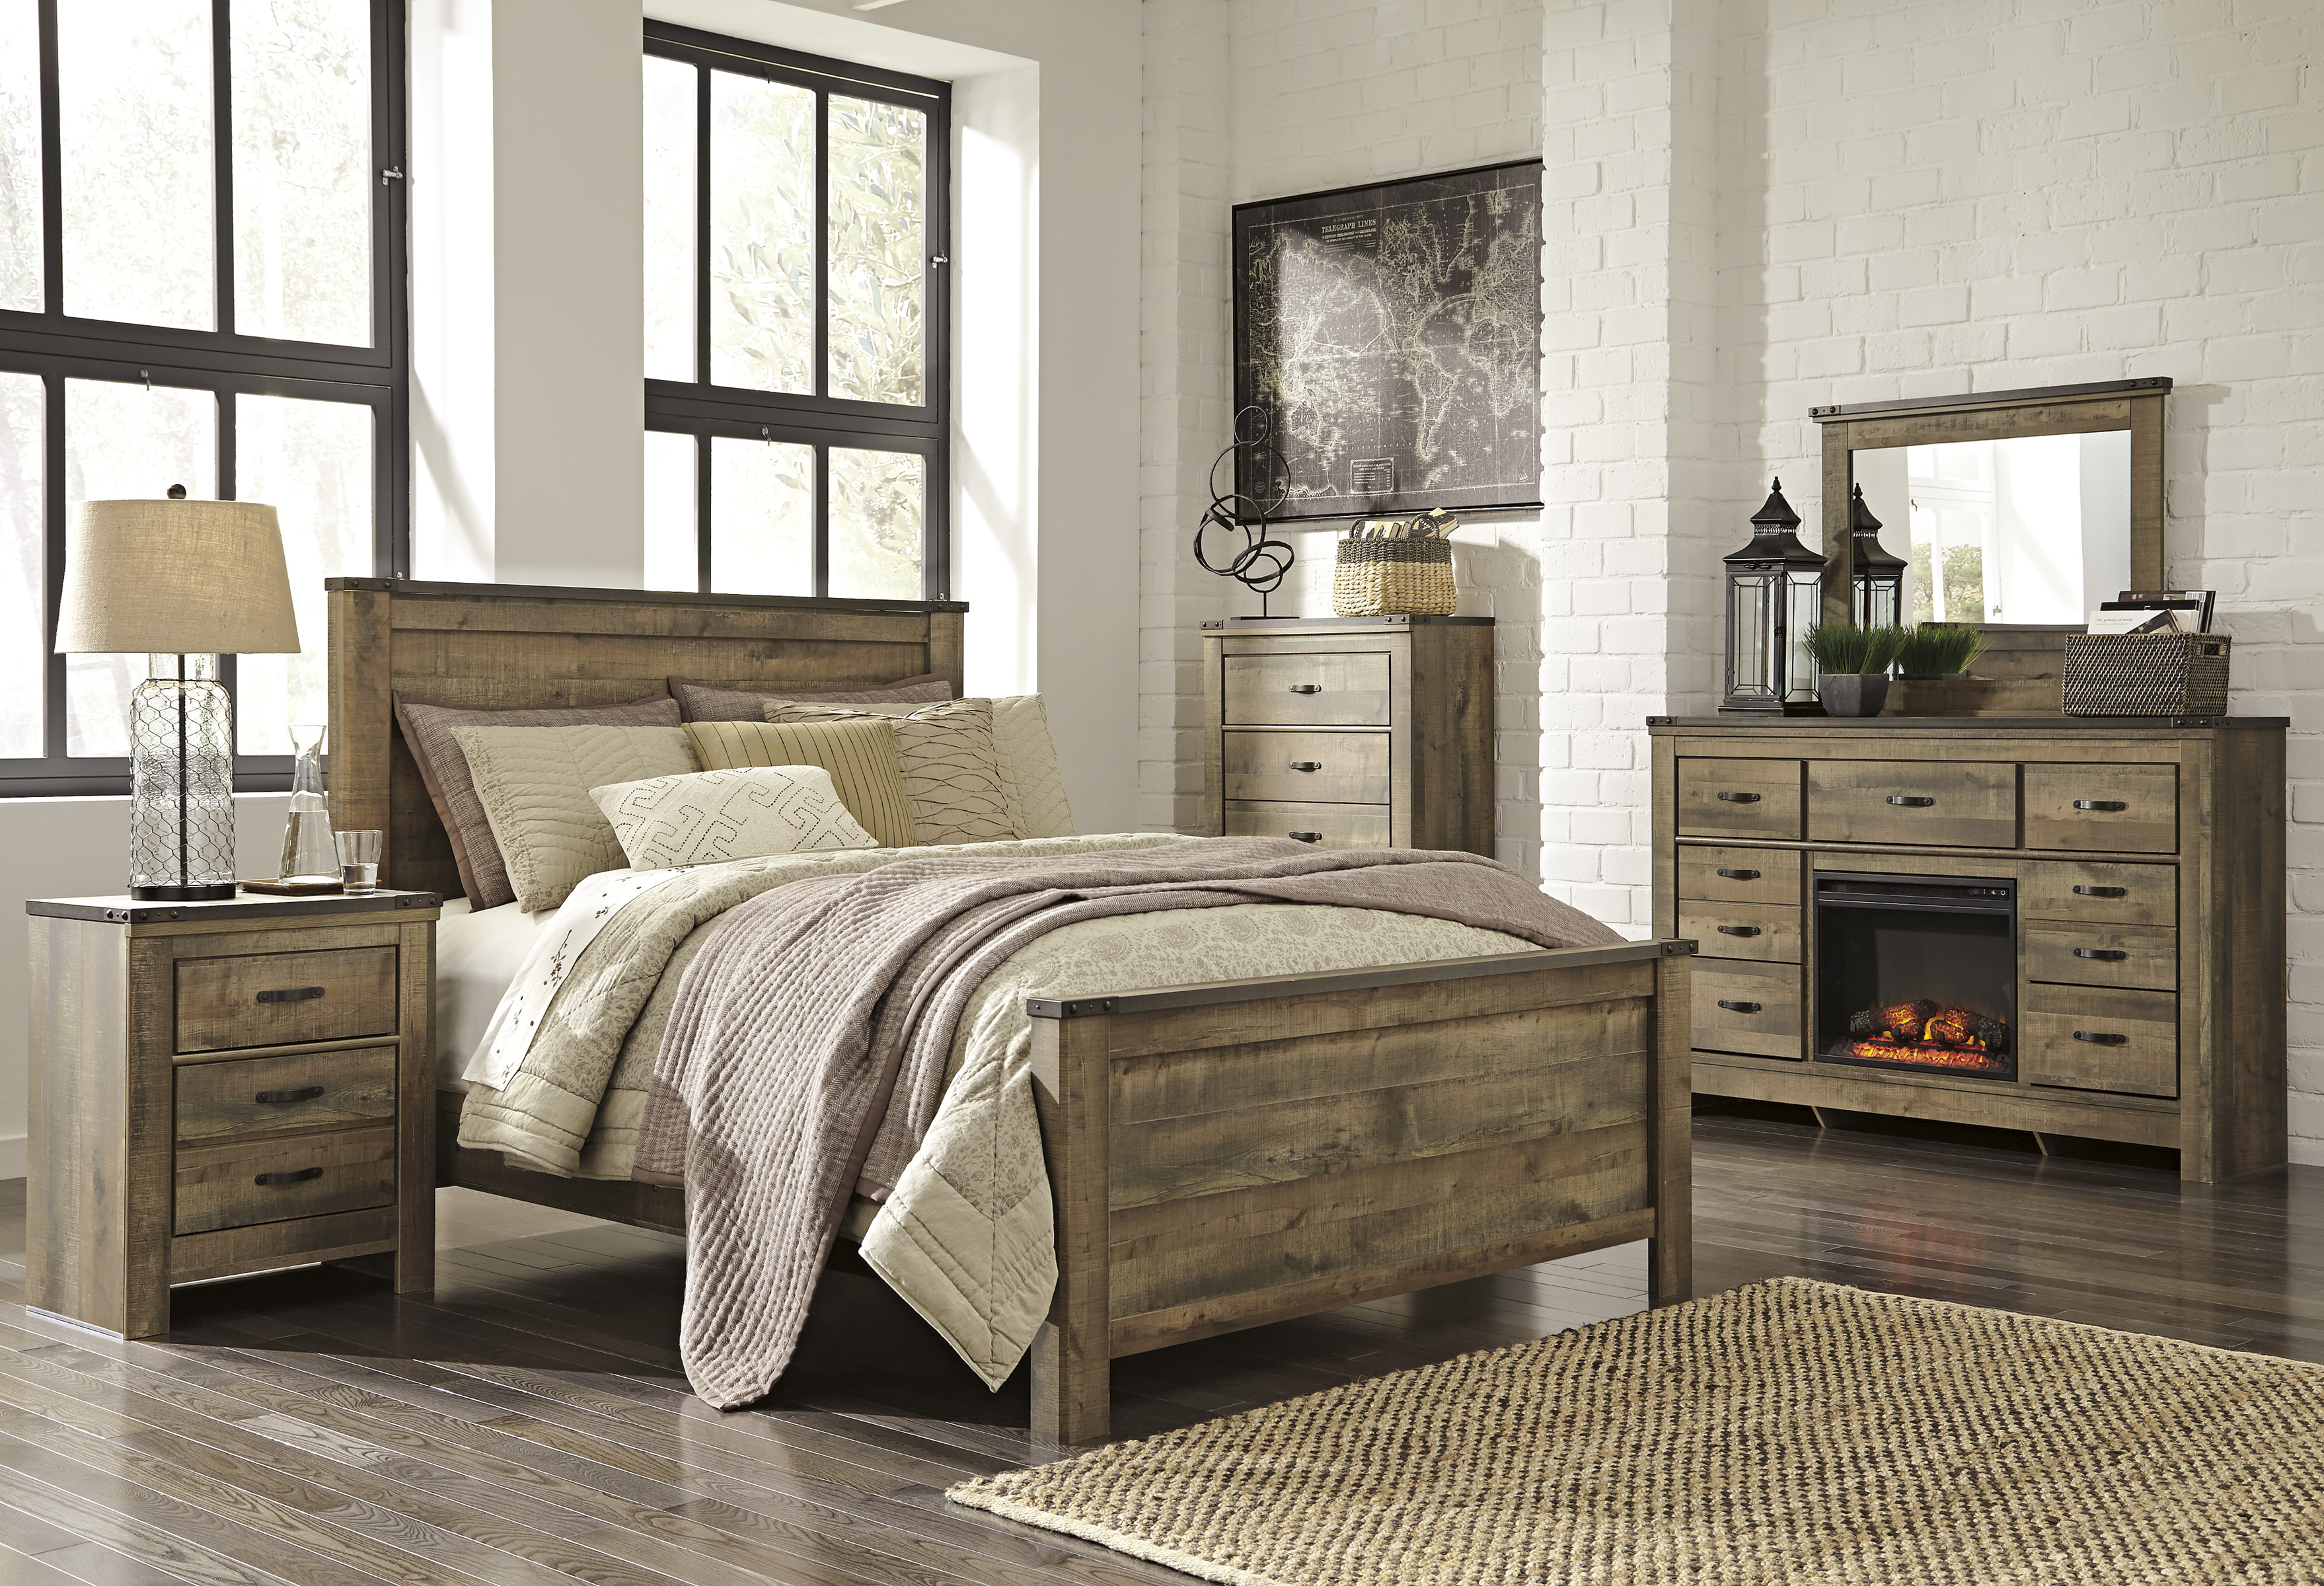 Exceptional Log Furniture In Utah By Bradleyu0027s Rustic Furniture